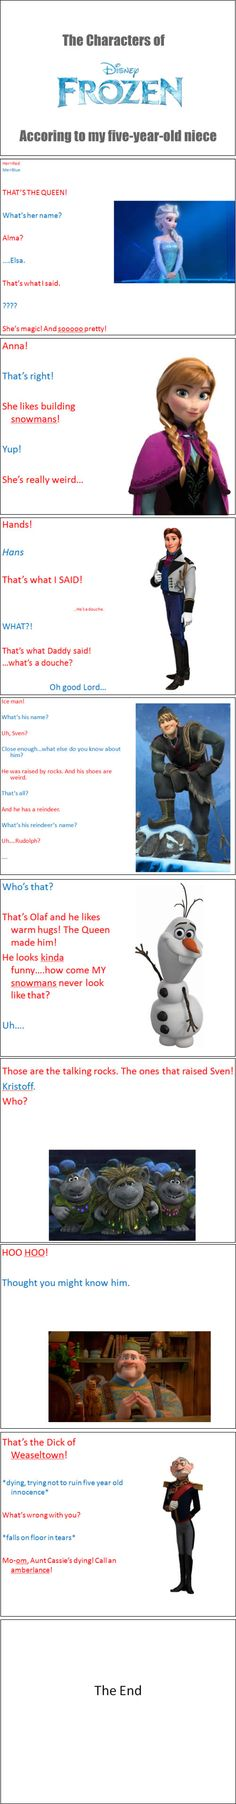 The characters of Frozen according to a five-year-old girl. SO FUNNY!-And I have NOR even seen it yet!